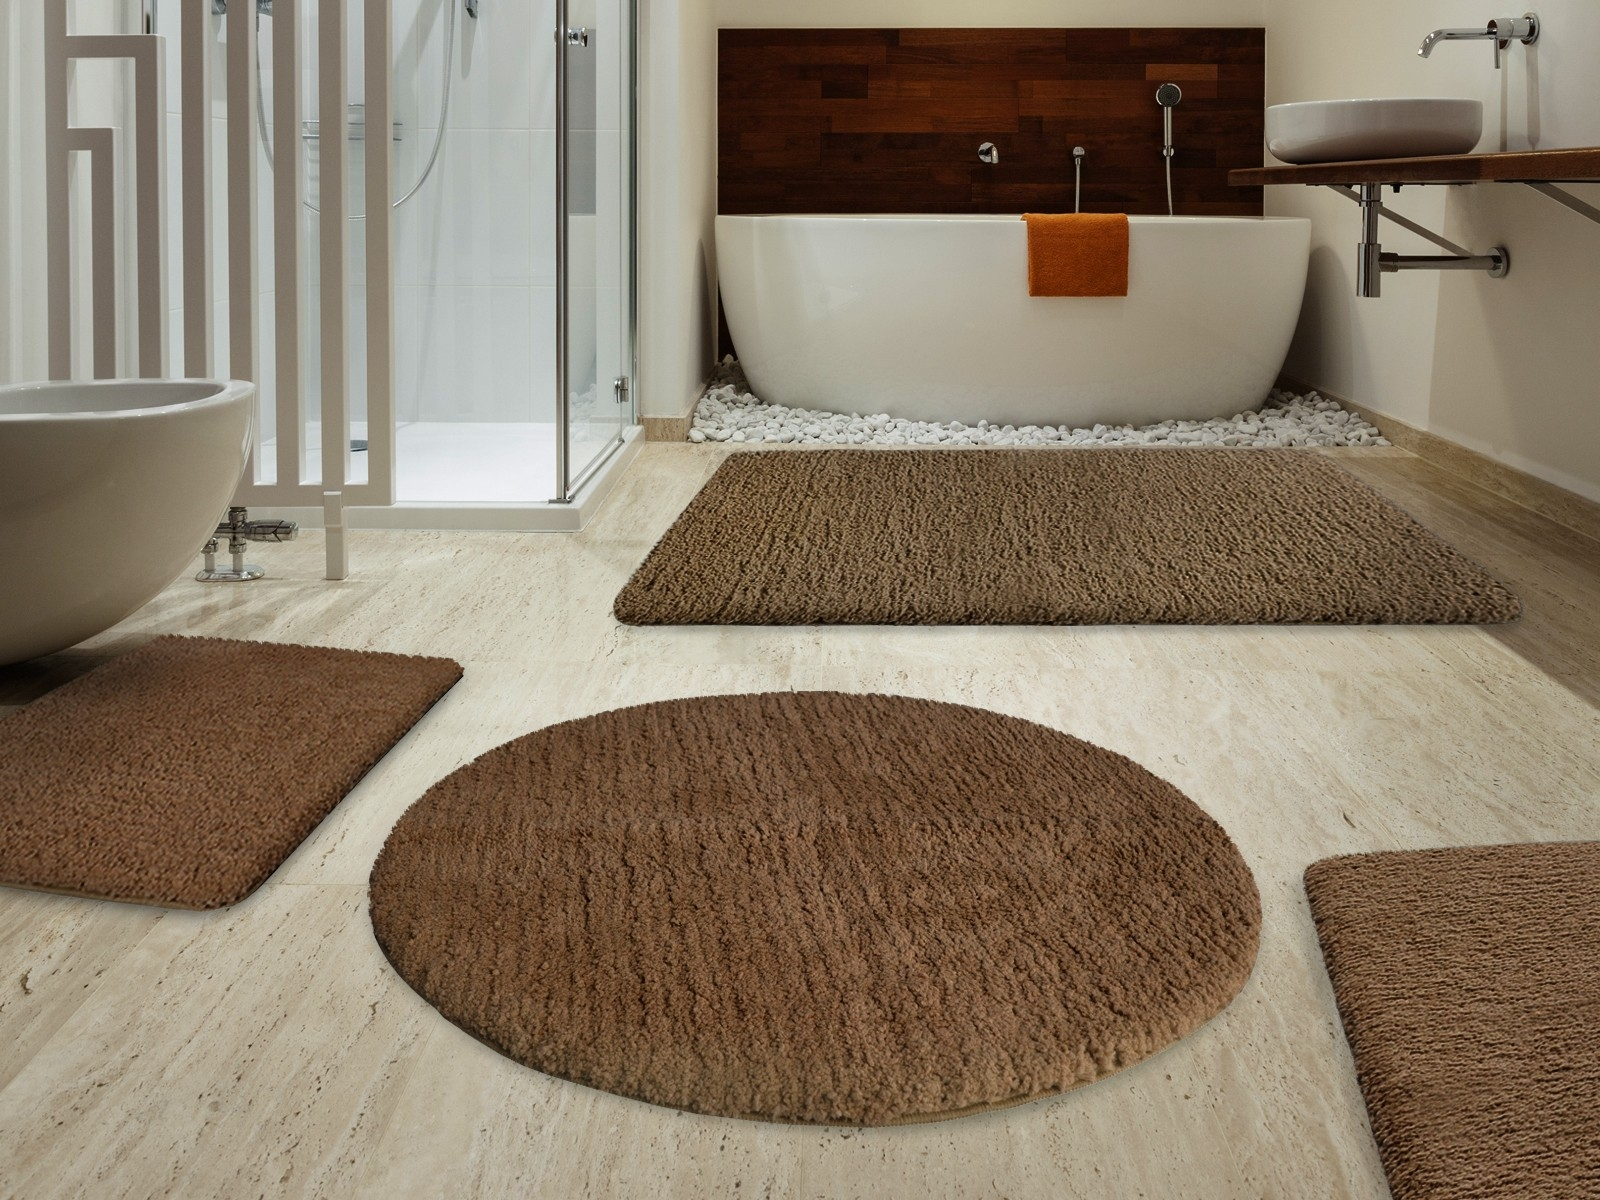 Round Brown Bathroom Rug